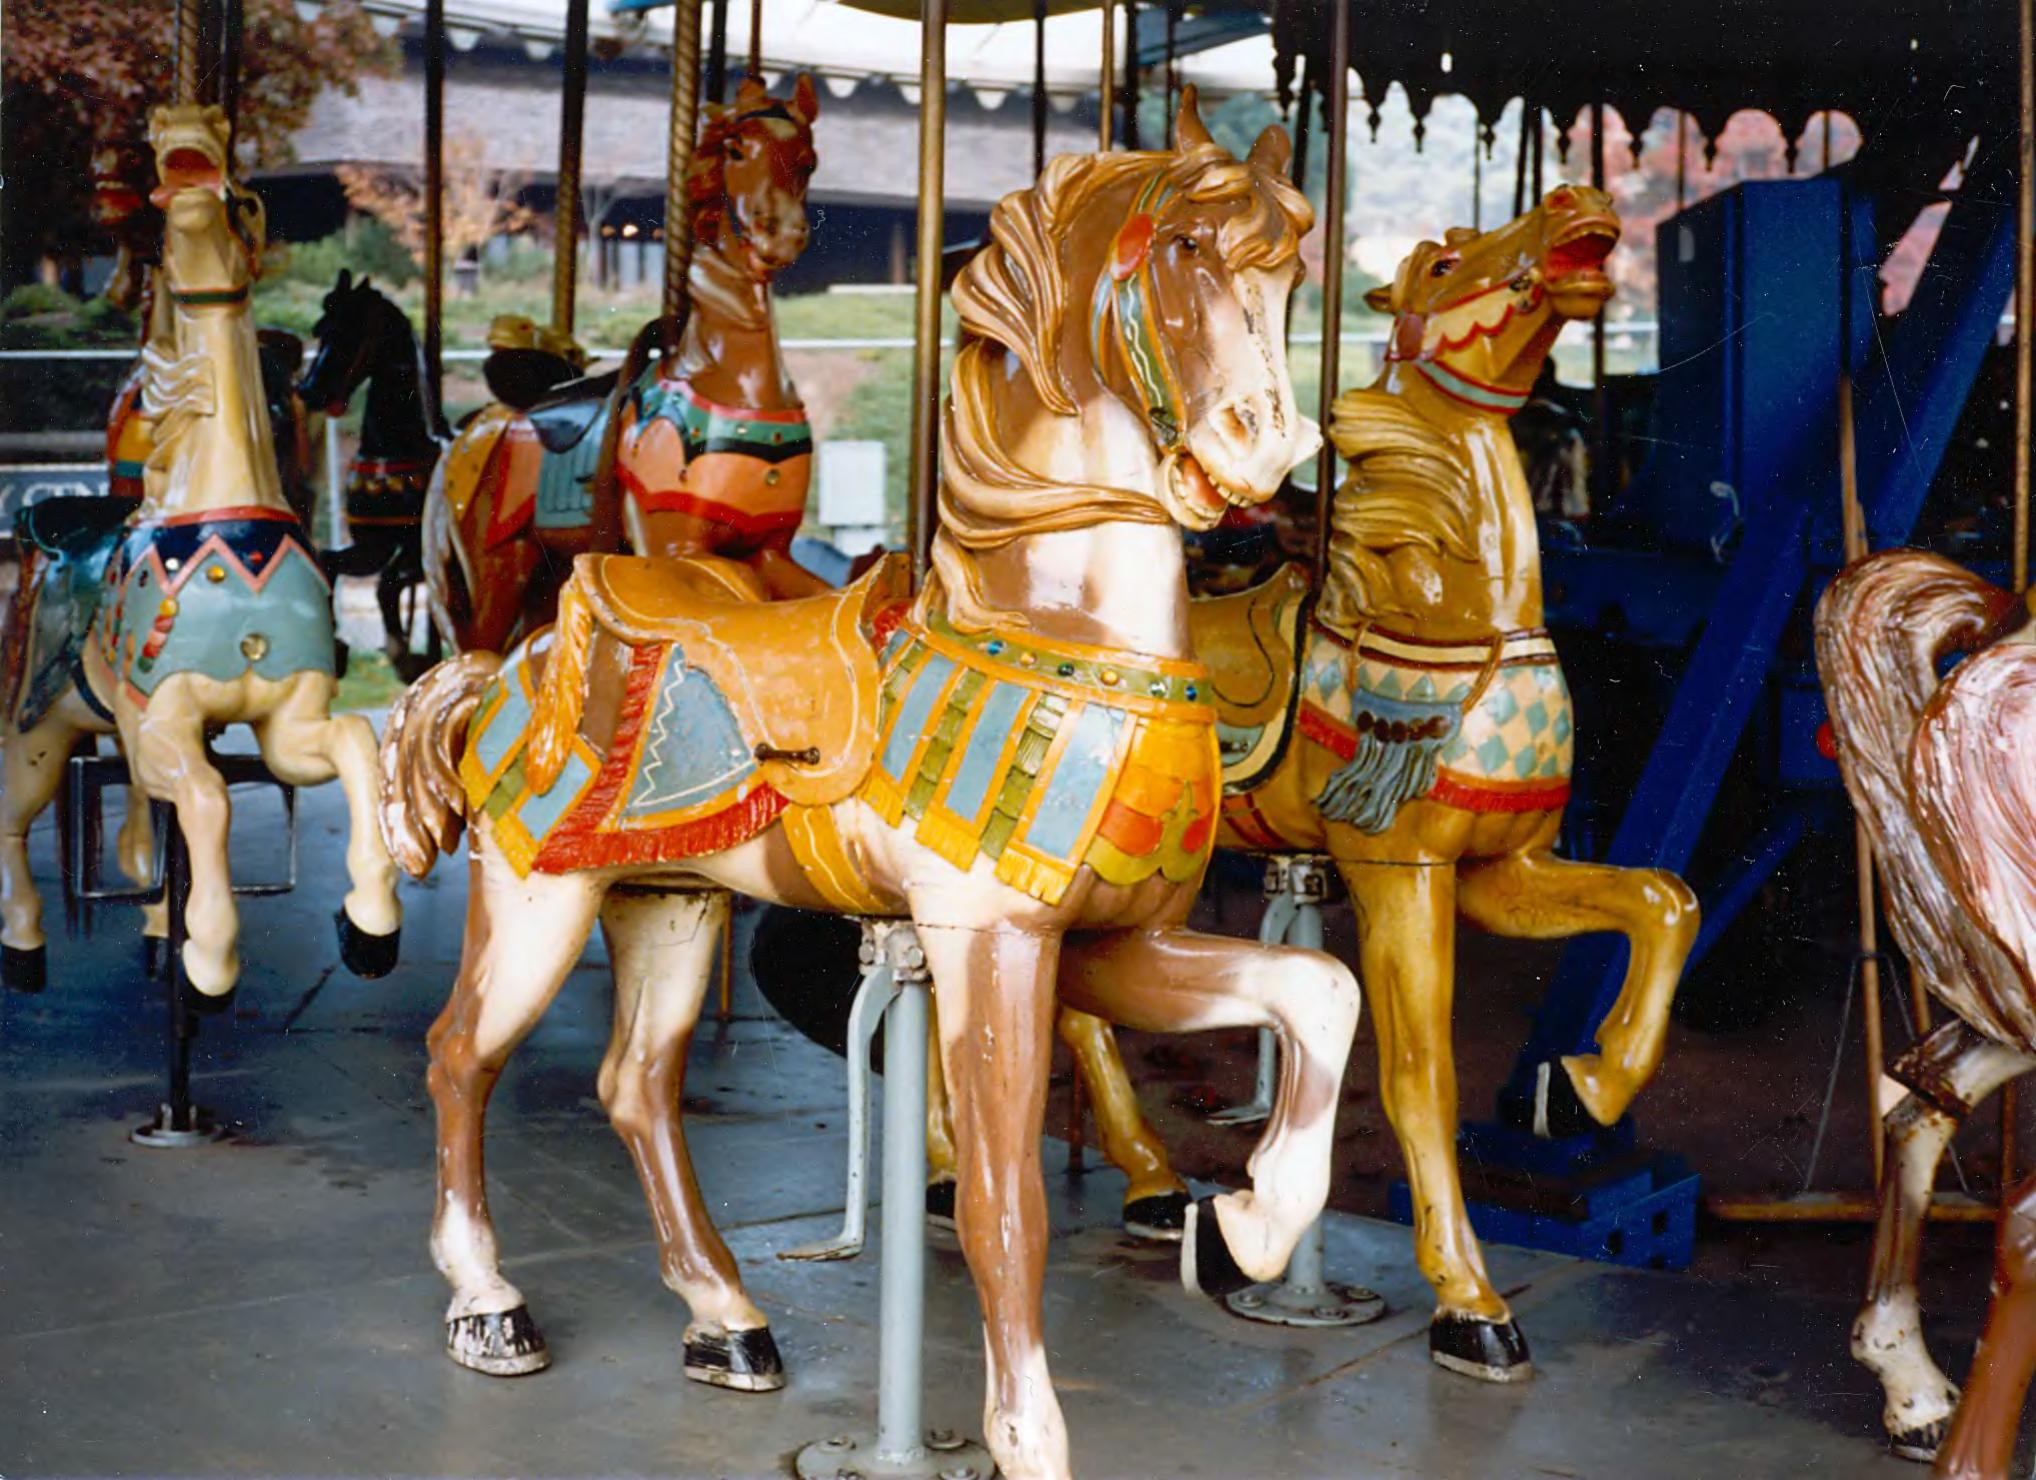 Detail of the carousel horses (Wikimedia Commons)